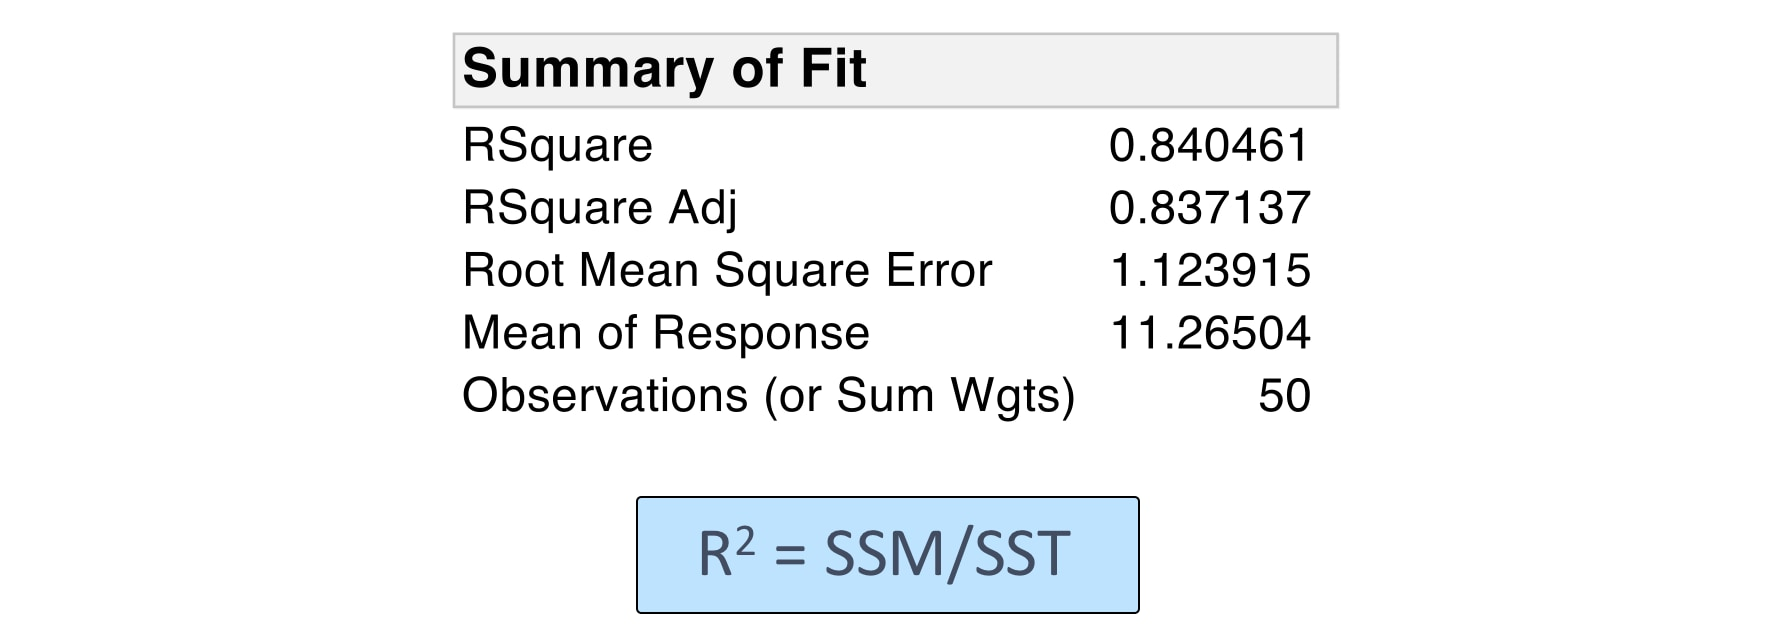 Summary of Fit Table